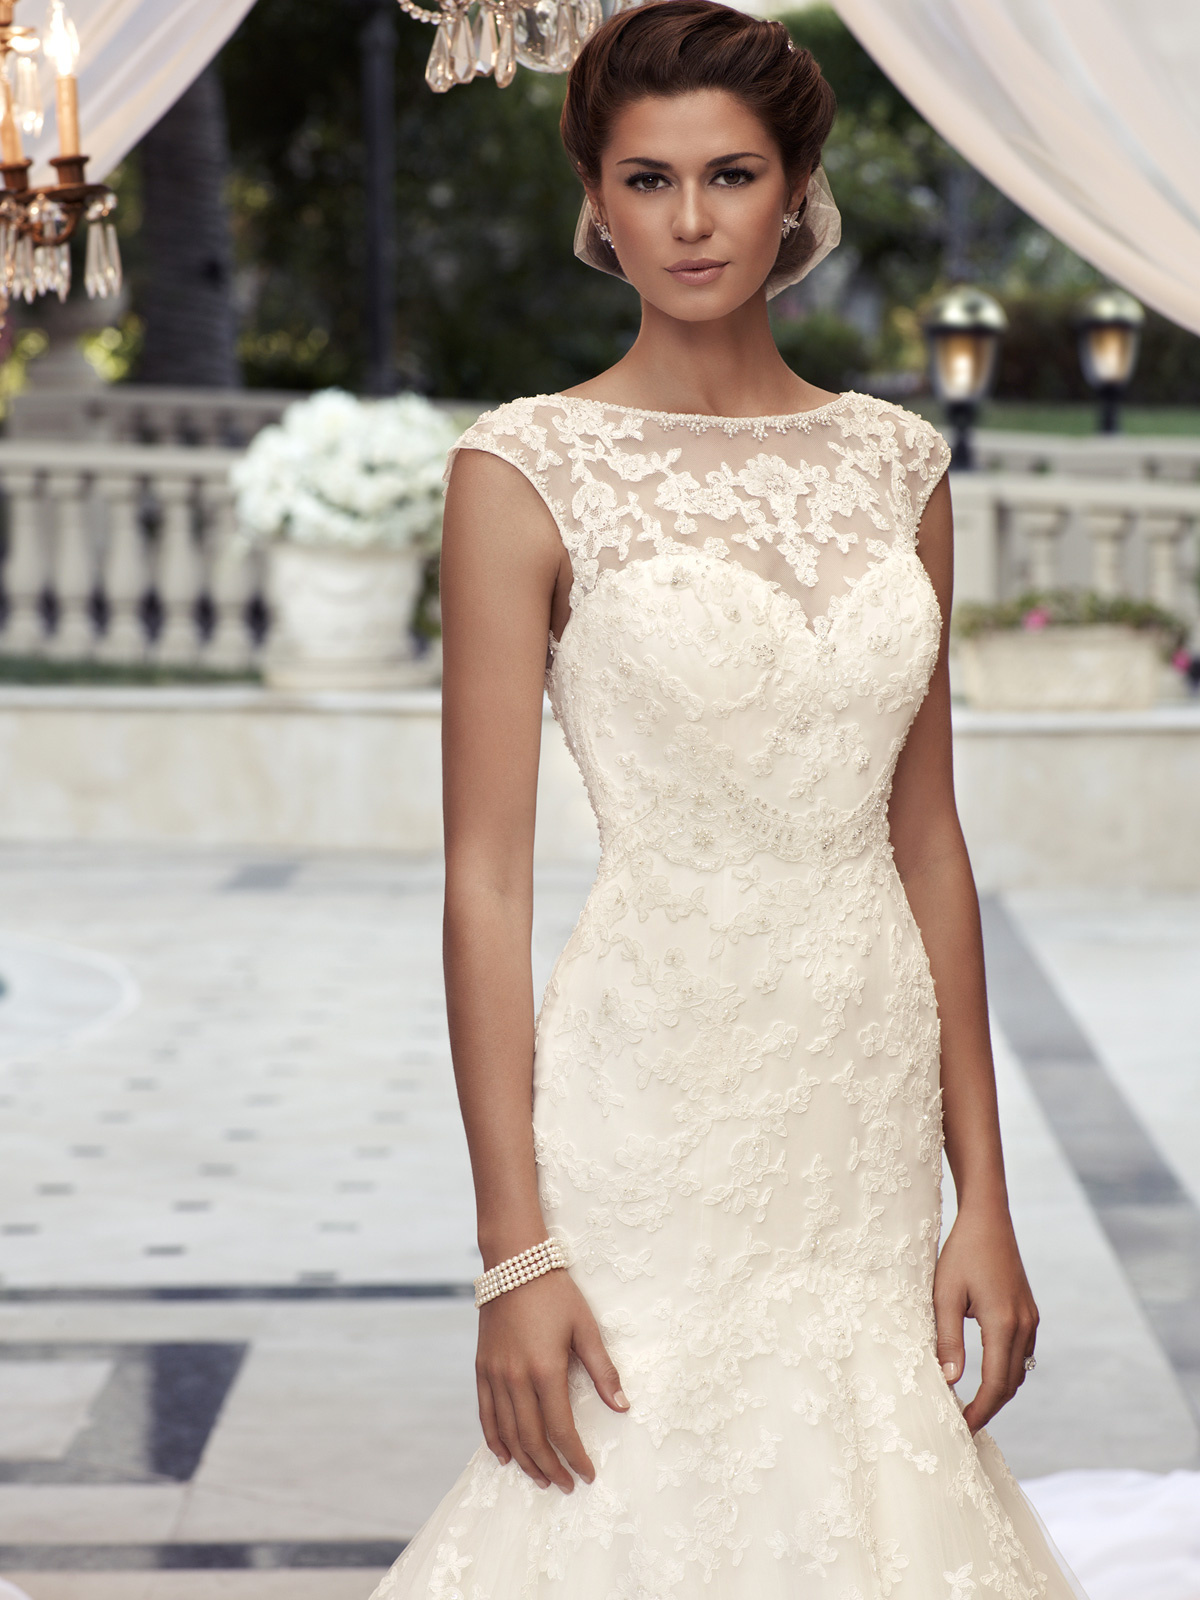 lace wedding dress with cap sleeves style d cap sleeve wedding dress Cap Sleeve Fit And Flare Casablanca Bridal Gown